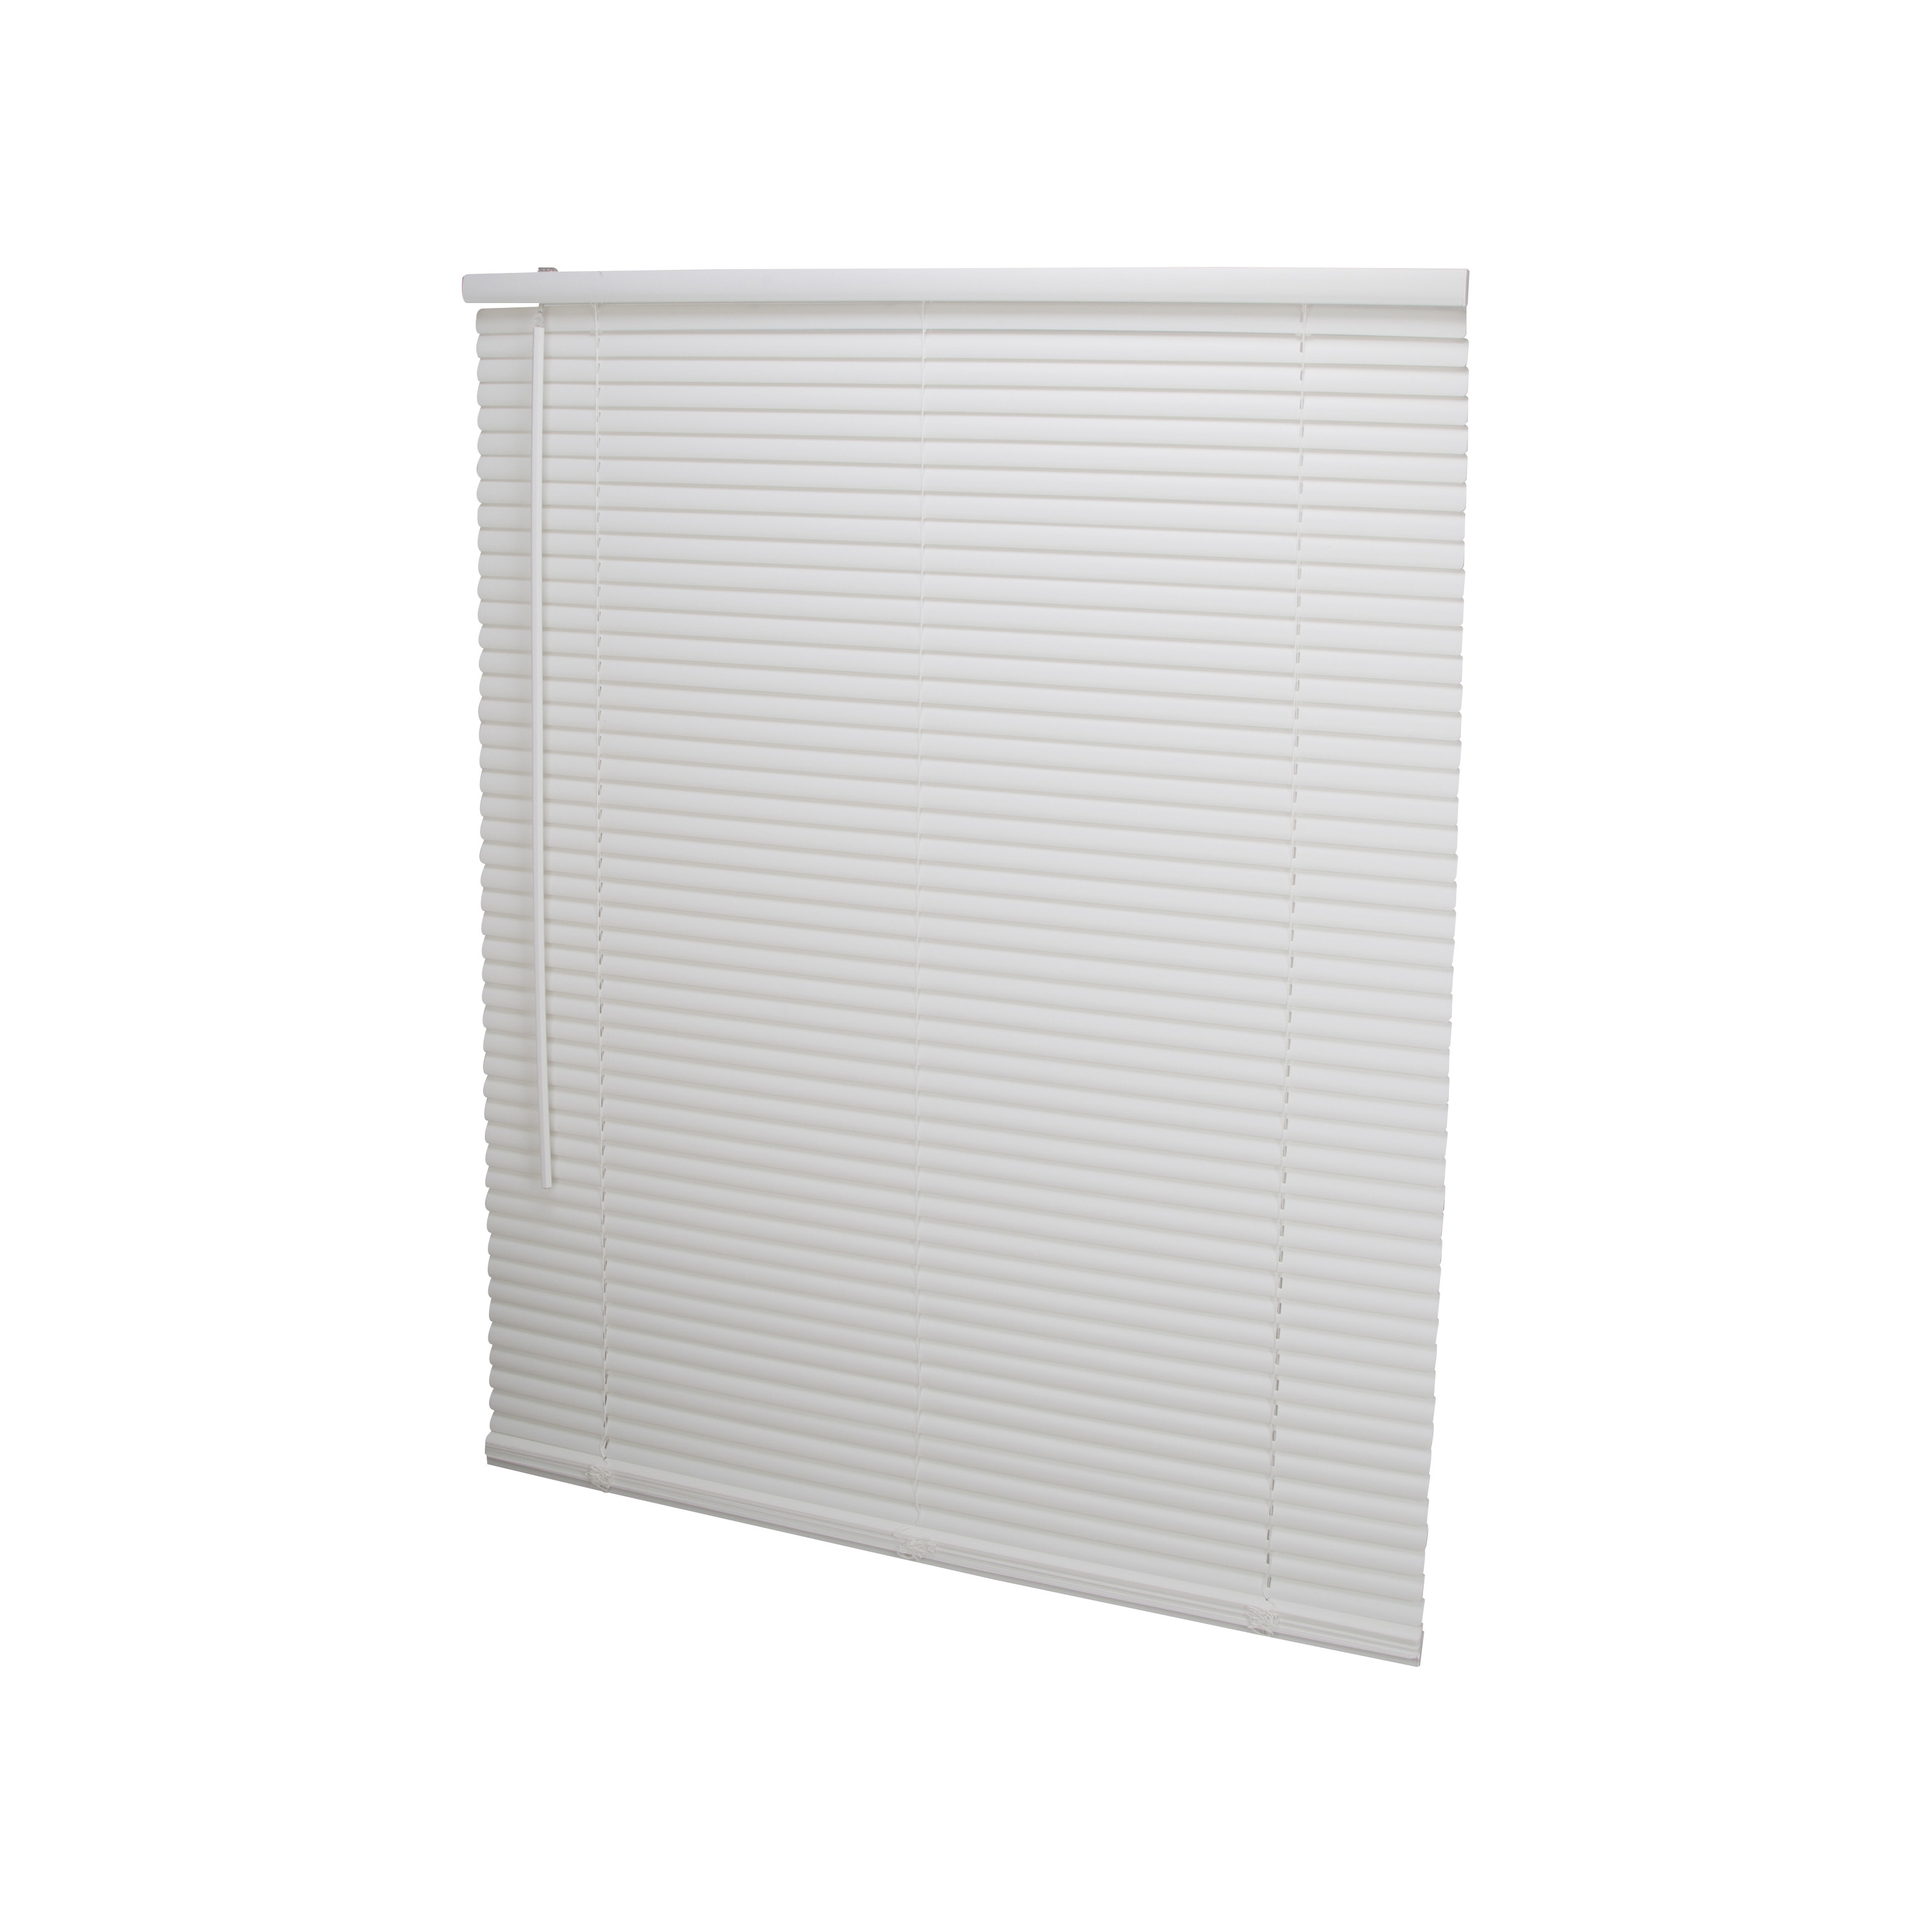 Picture of Simple Spaces PVCMB-10A Cordless Mini Blind, 64 in L, 35 in W, Vinyl, White